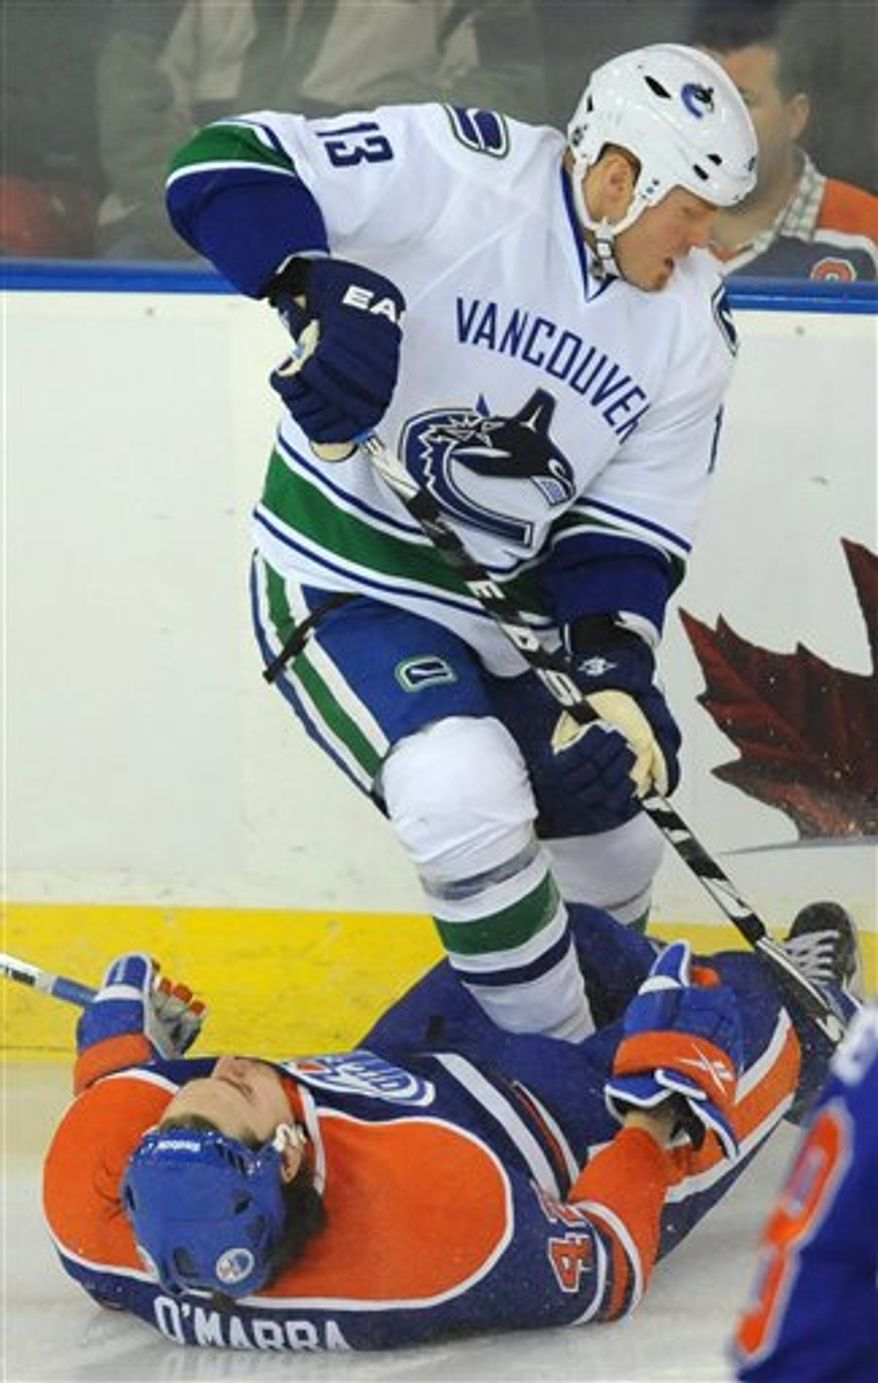 Edmonton Oilers'  Ryan O'Marra, bottom, collides with Vancouver Canucks Raffi Torres during the first period of an NHL hockey game in Edmonton, Alberta, on Tuesday, April 5, 2011. (AP Photo/The Canadian Press, John Ulan)